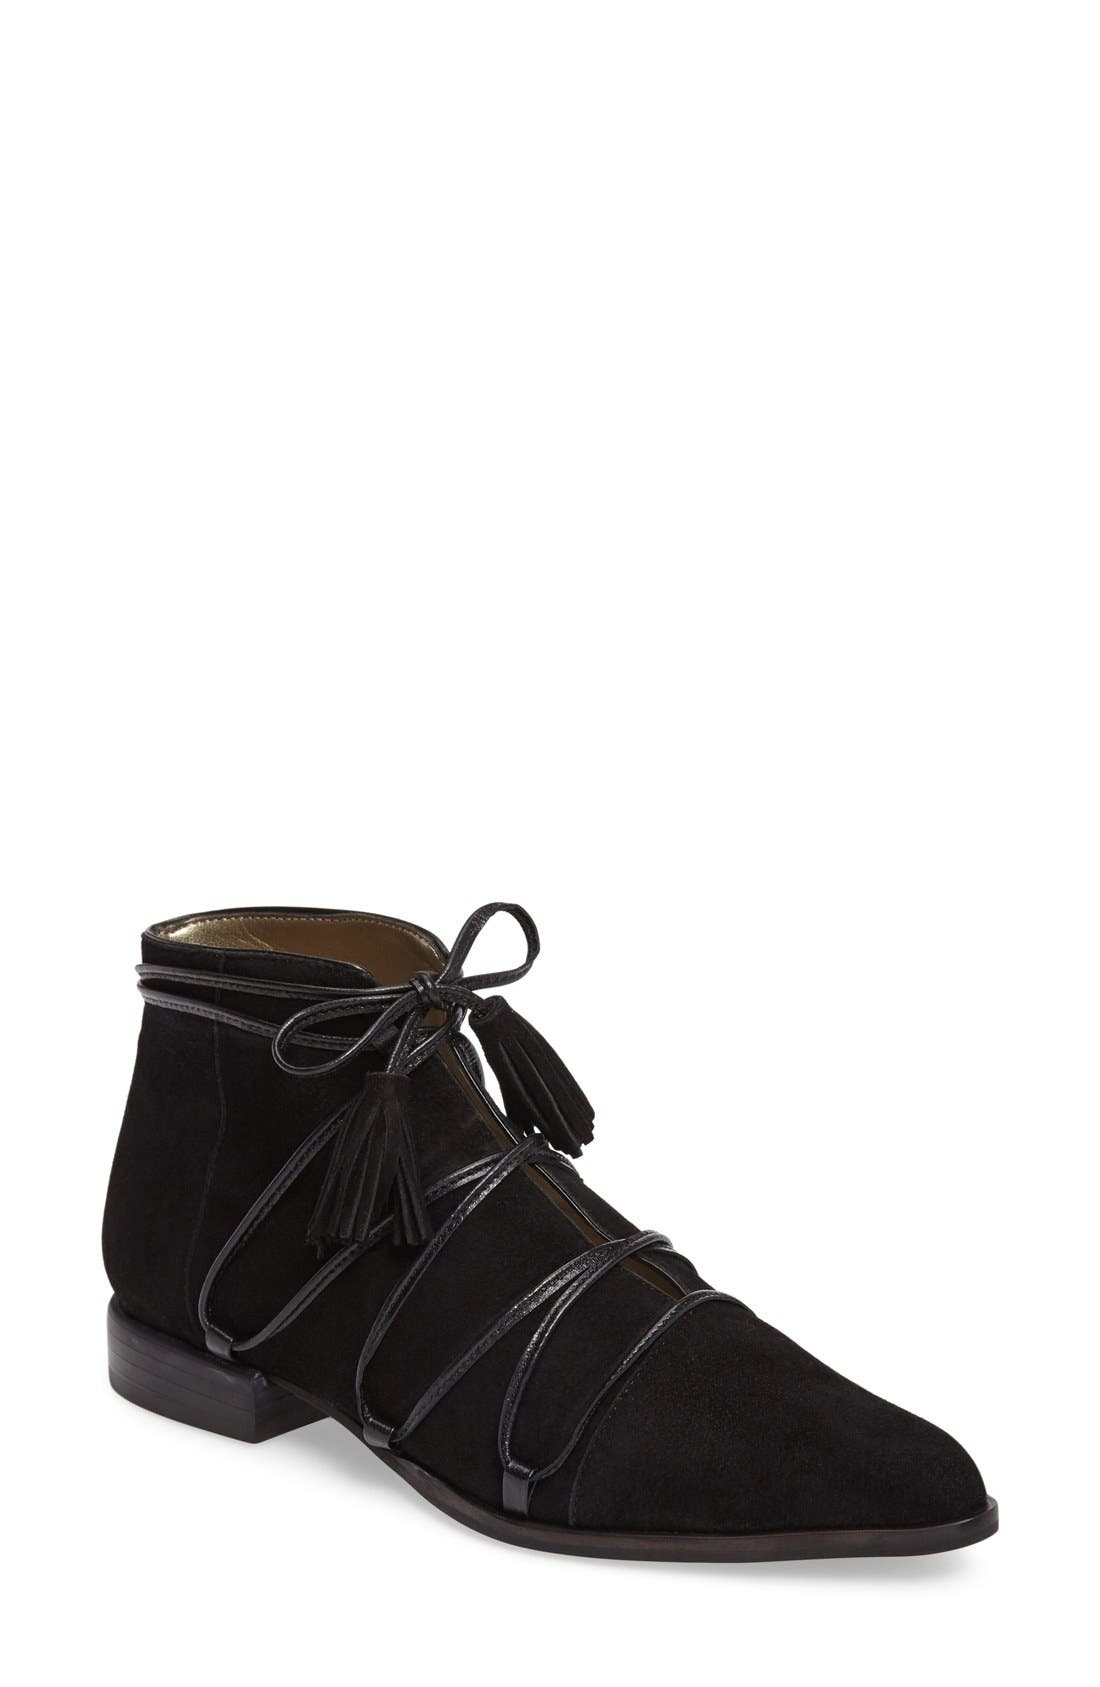 Alternate Image 1 Selected - French Sole Styles Lace-Up Bootie (Women)